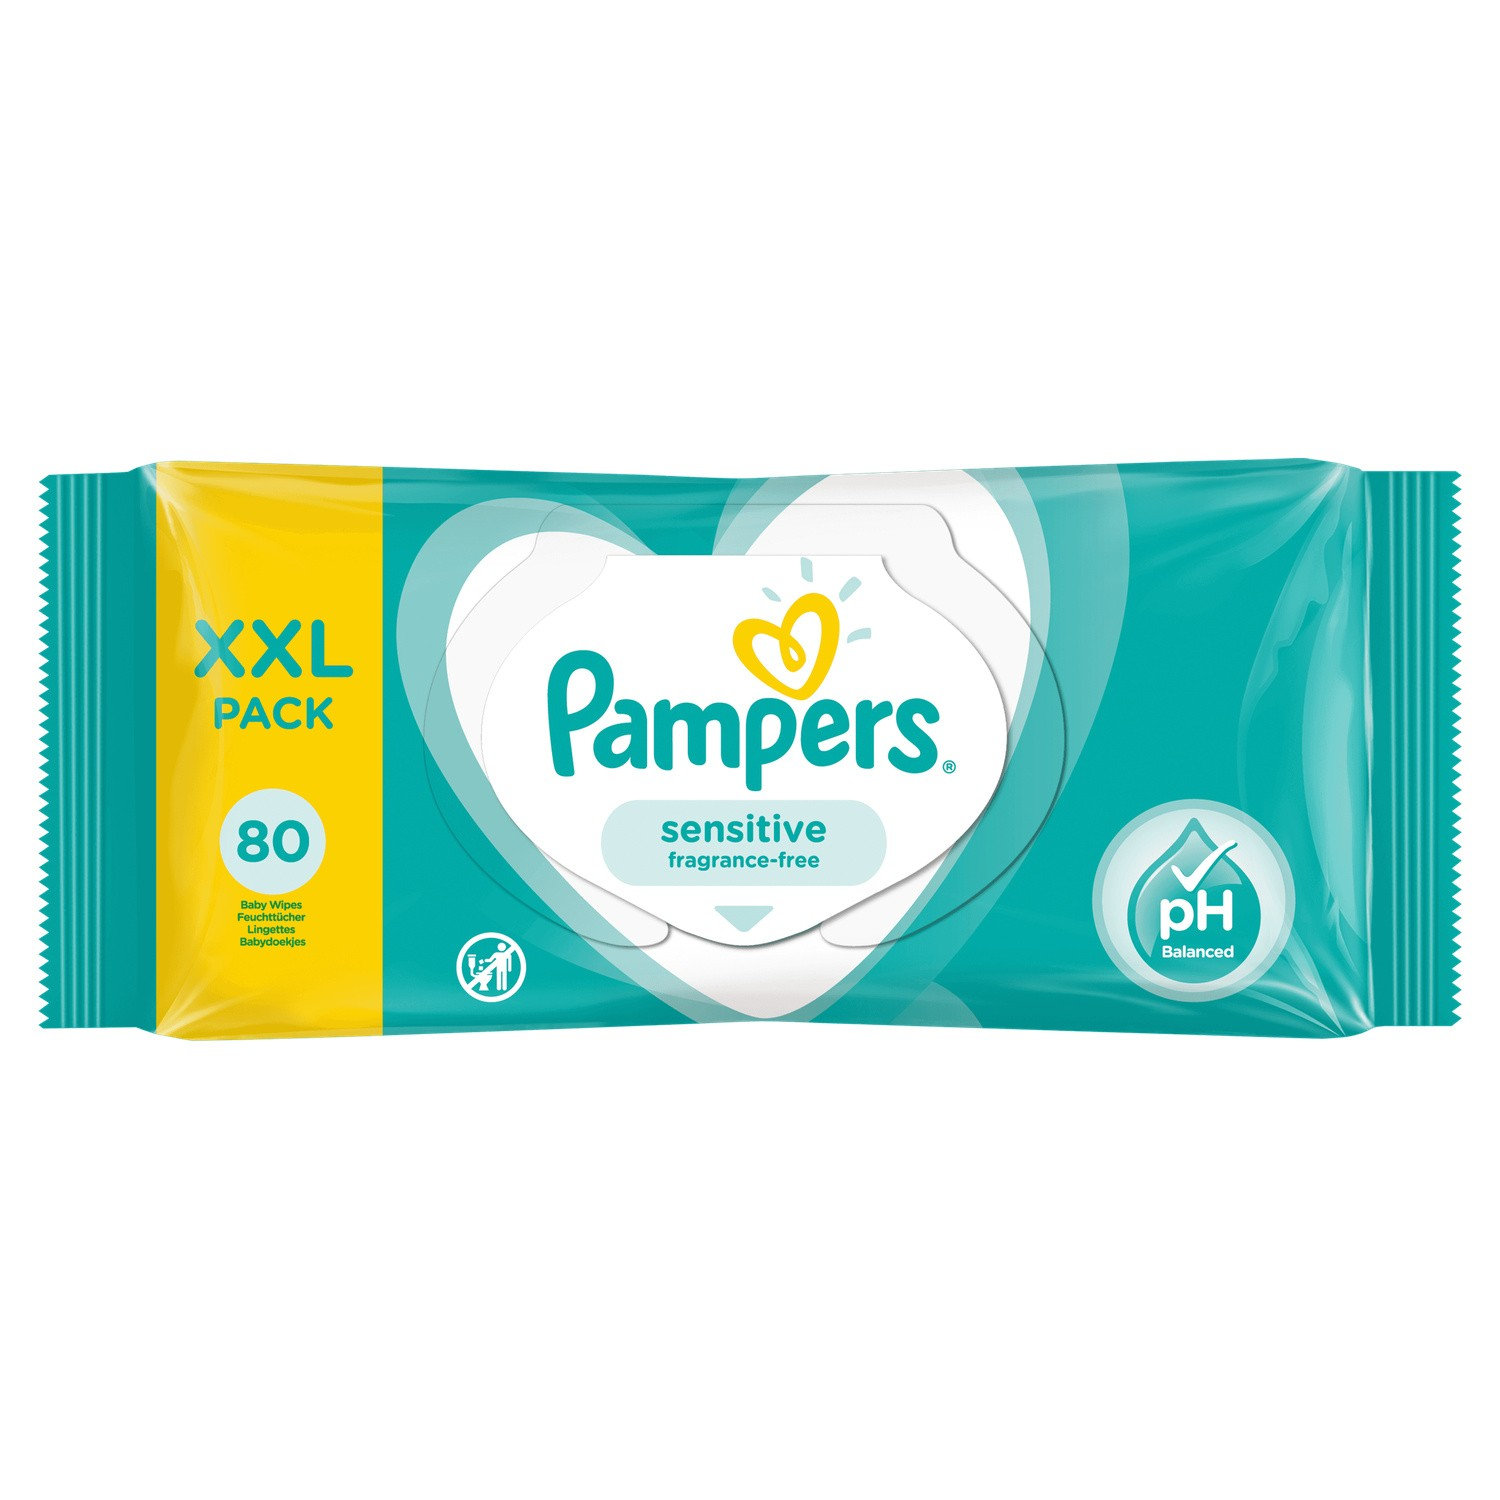 Pampers Lingettes Sensitive 1x